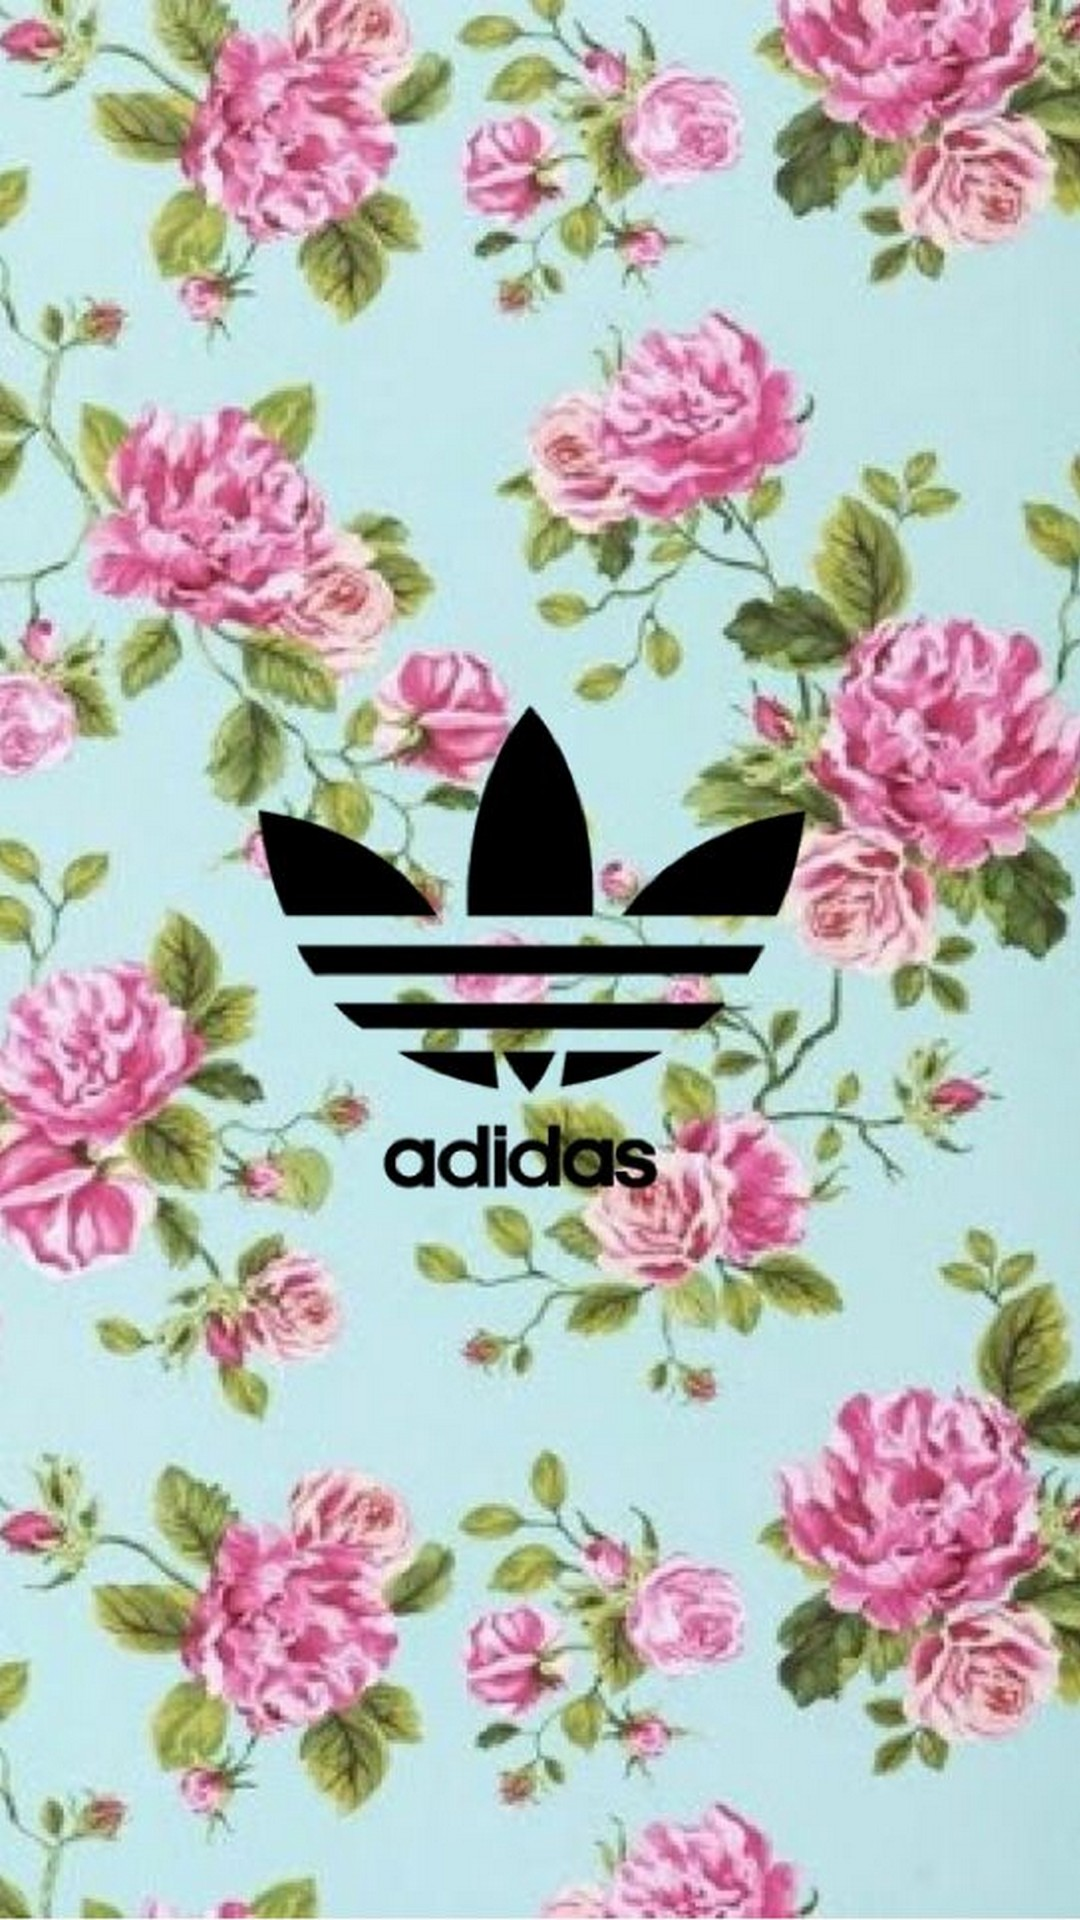 Adidas Iphone Wallpaper Lock Screen With High-resolution - Lock Screen Cute Iphone , HD Wallpaper & Backgrounds